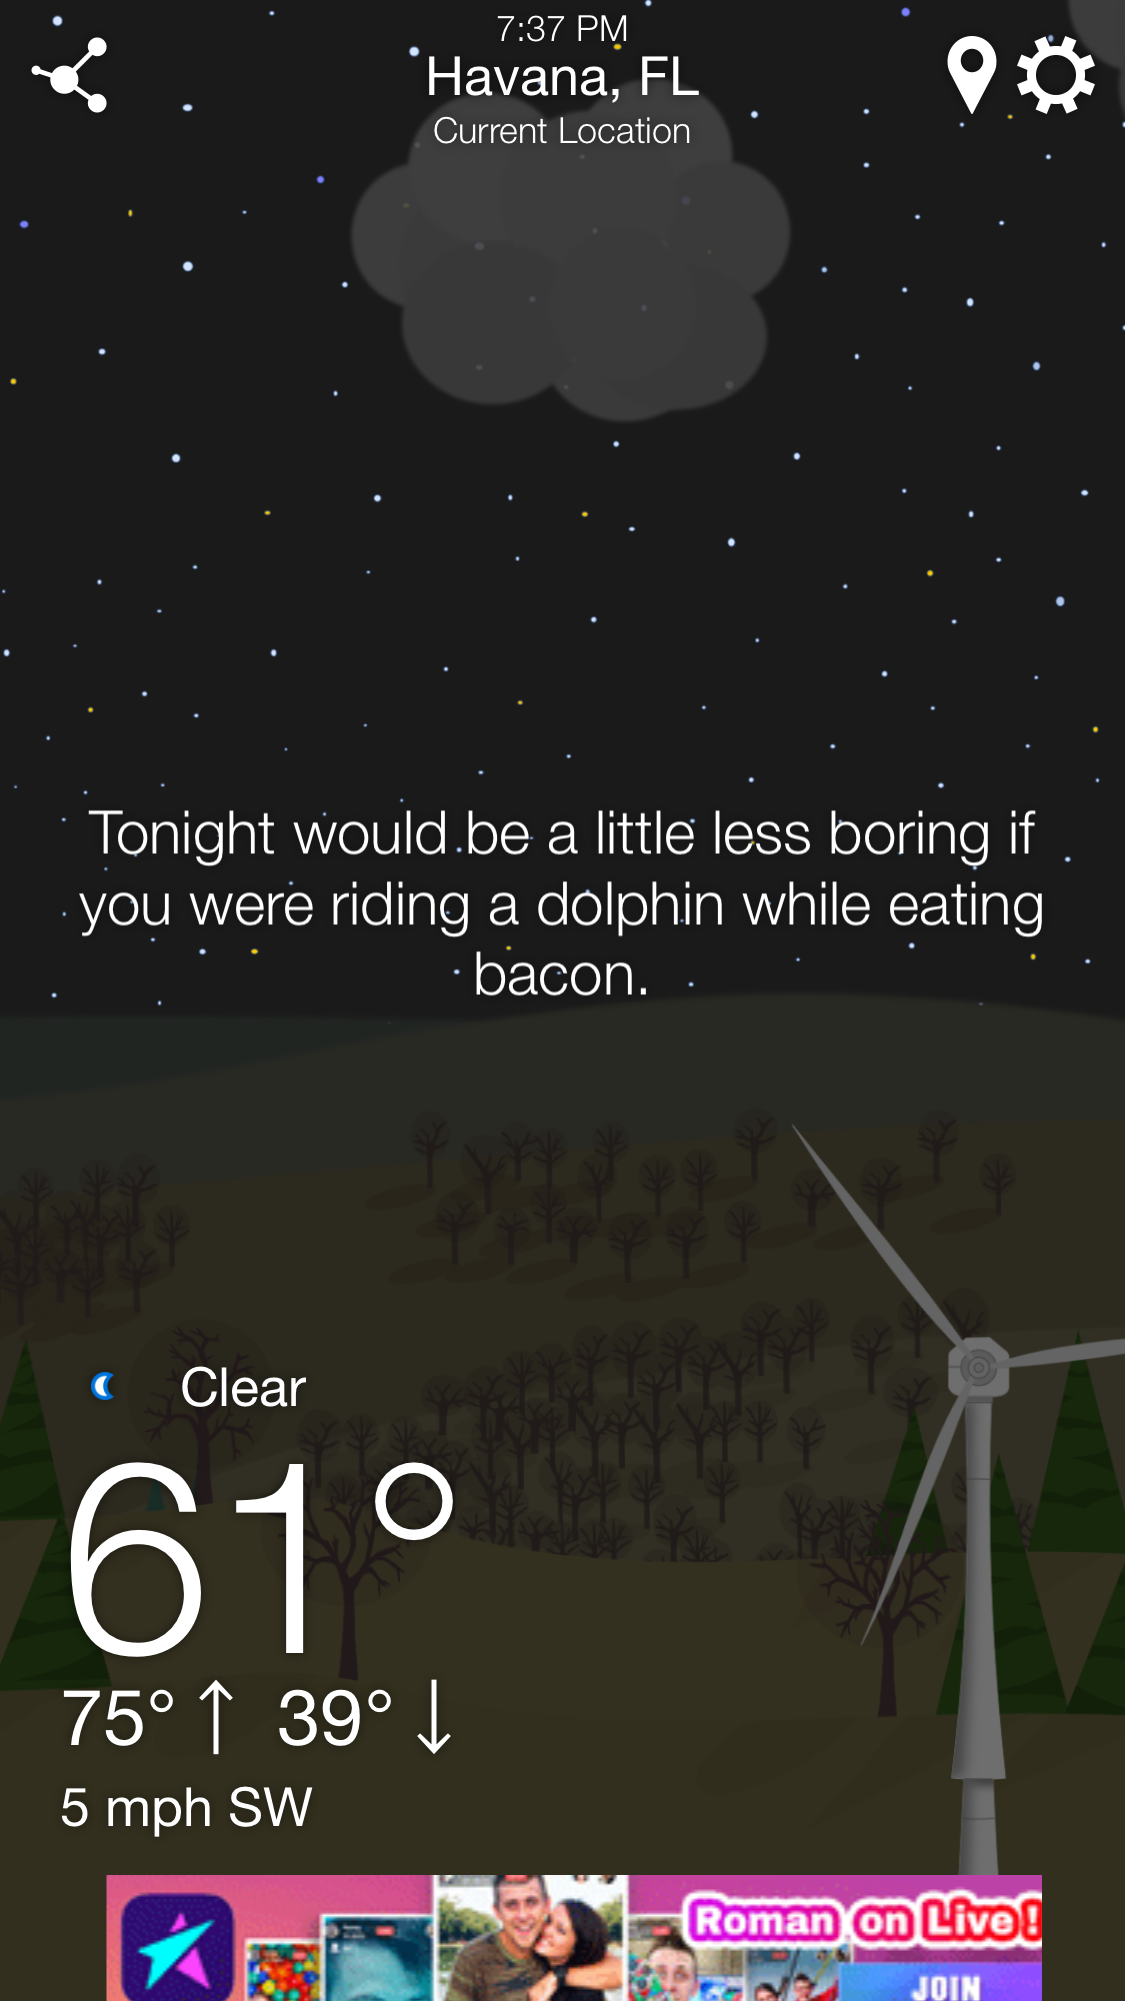 WTForecast App Gives You Weather The Way No Meteorologist Would